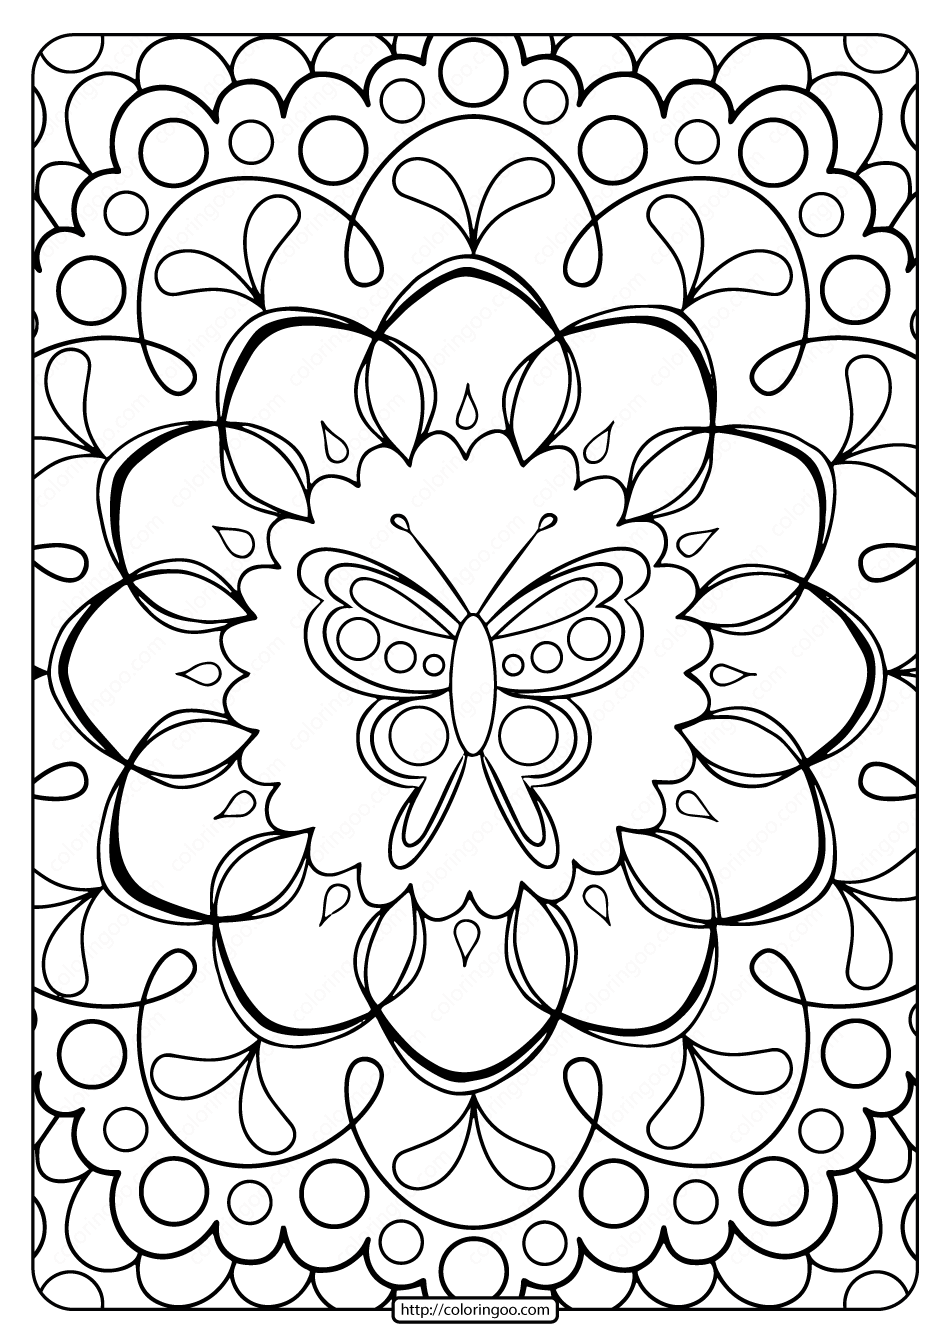 colouring pages to print free free printable mushroom adult coloring page to pages free print colouring